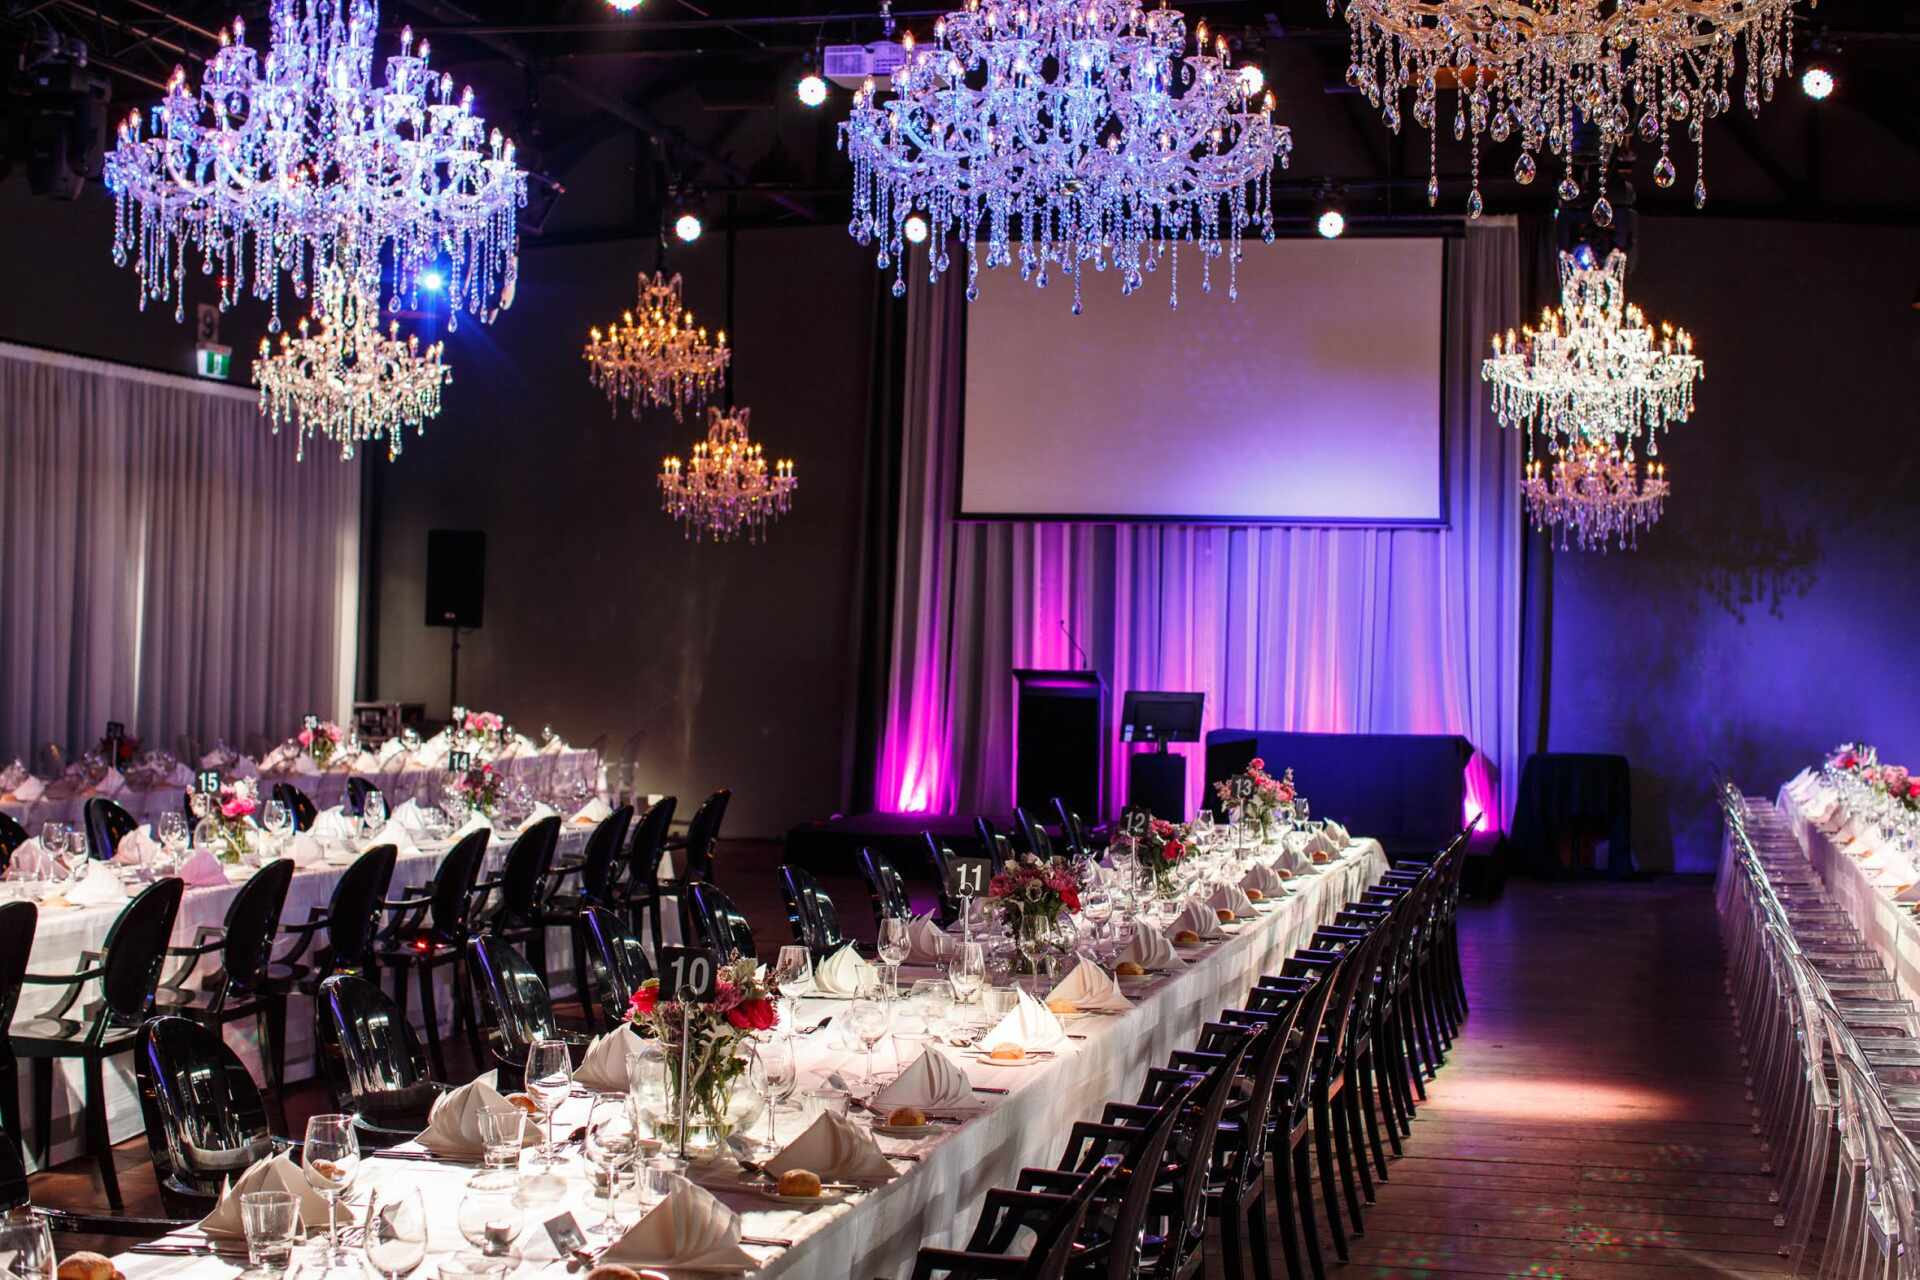 Chandelier hire melbourne action events for larger spaces we have a matching pair of exquisite chandeliers measuring 1300mm x 1500mm height x diametre and are a real statement chandelier junglespirit Choice Image